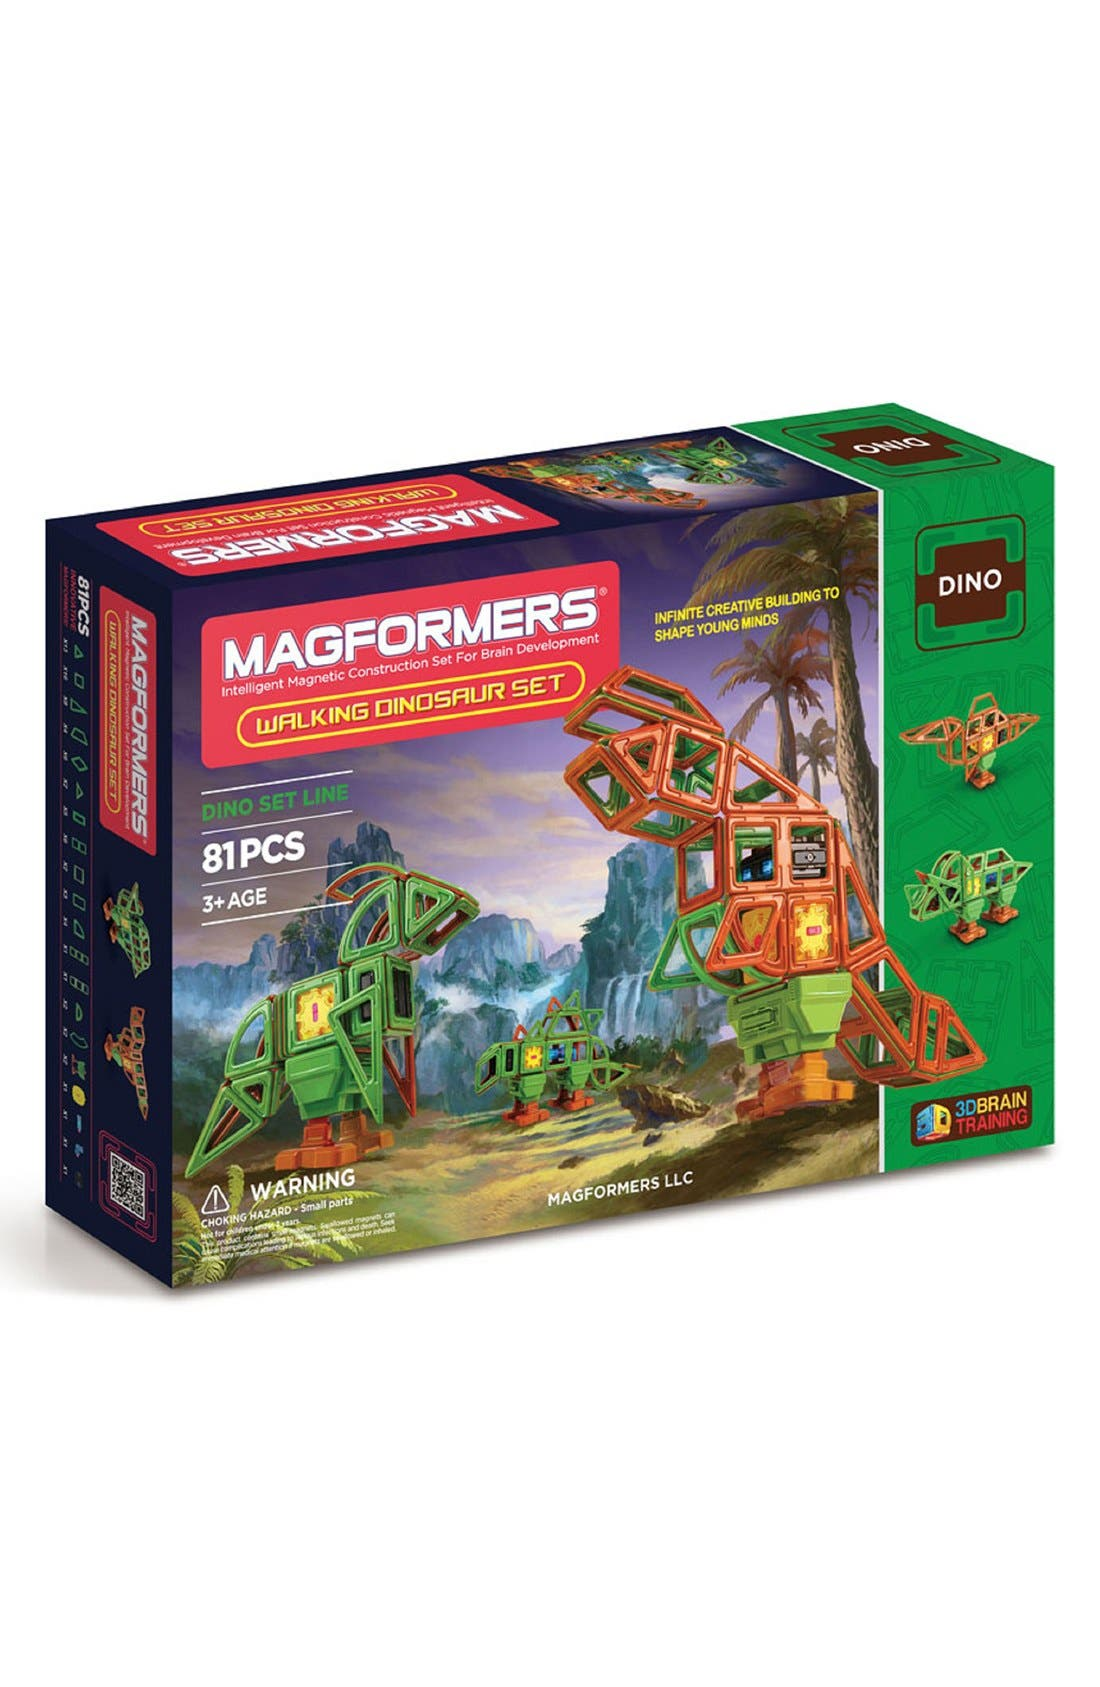 Main Image - Magformers 'Walking Dinosaur' Wind-Up Toy Magnetic Construction Set